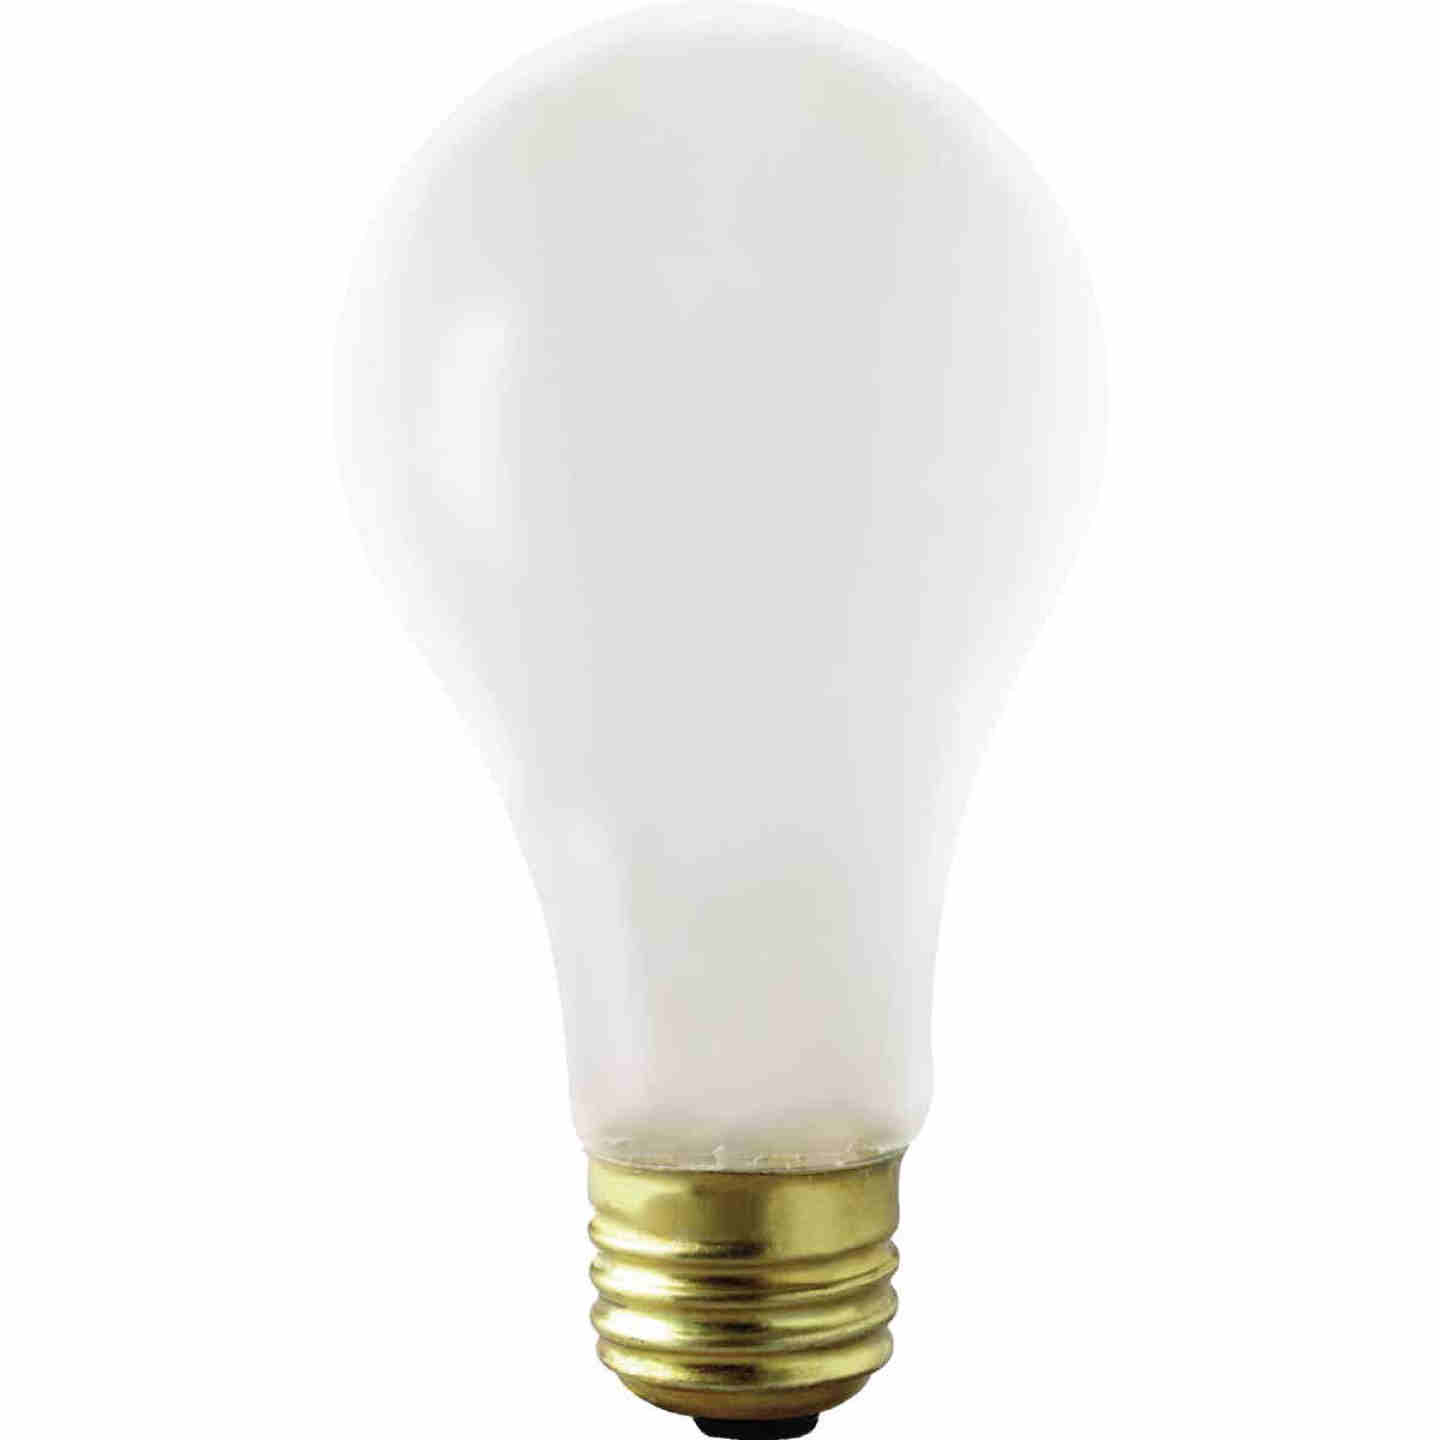 Satco 75W Frosted Medium Base A21 Shatterproof Incandescent Rough Service Light Bulb Image 1